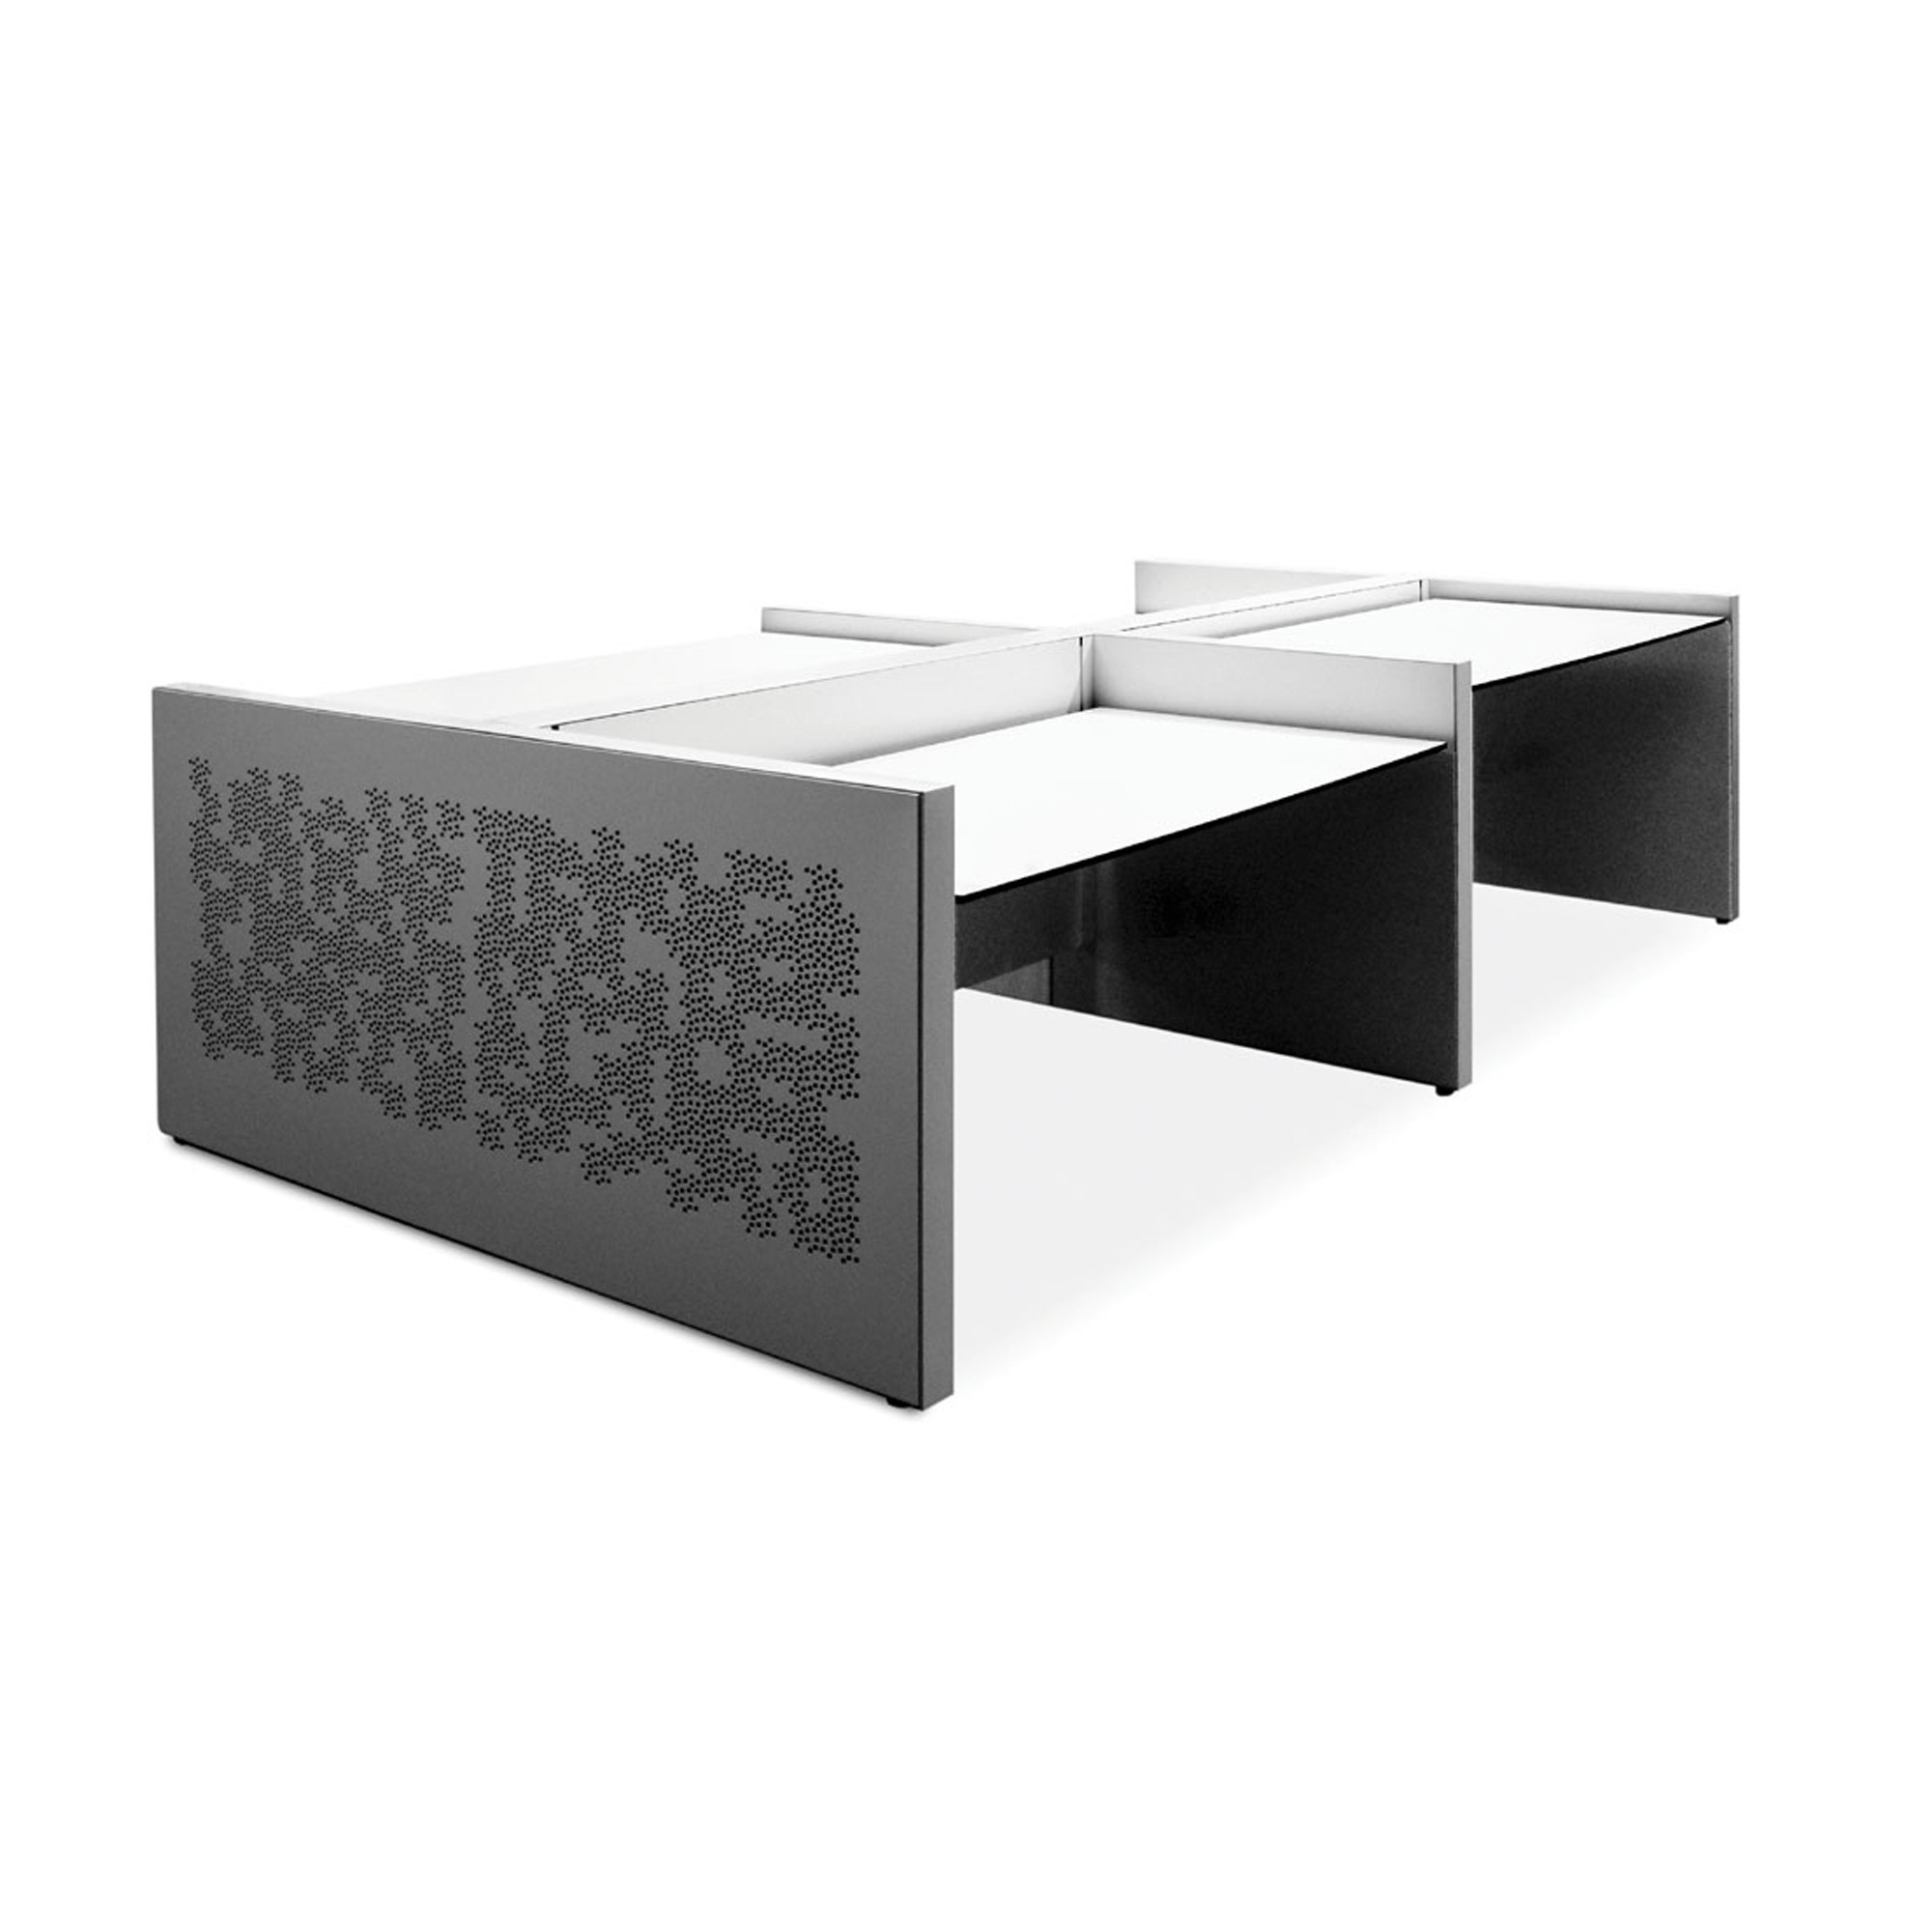 Ahrend 750 Bench System